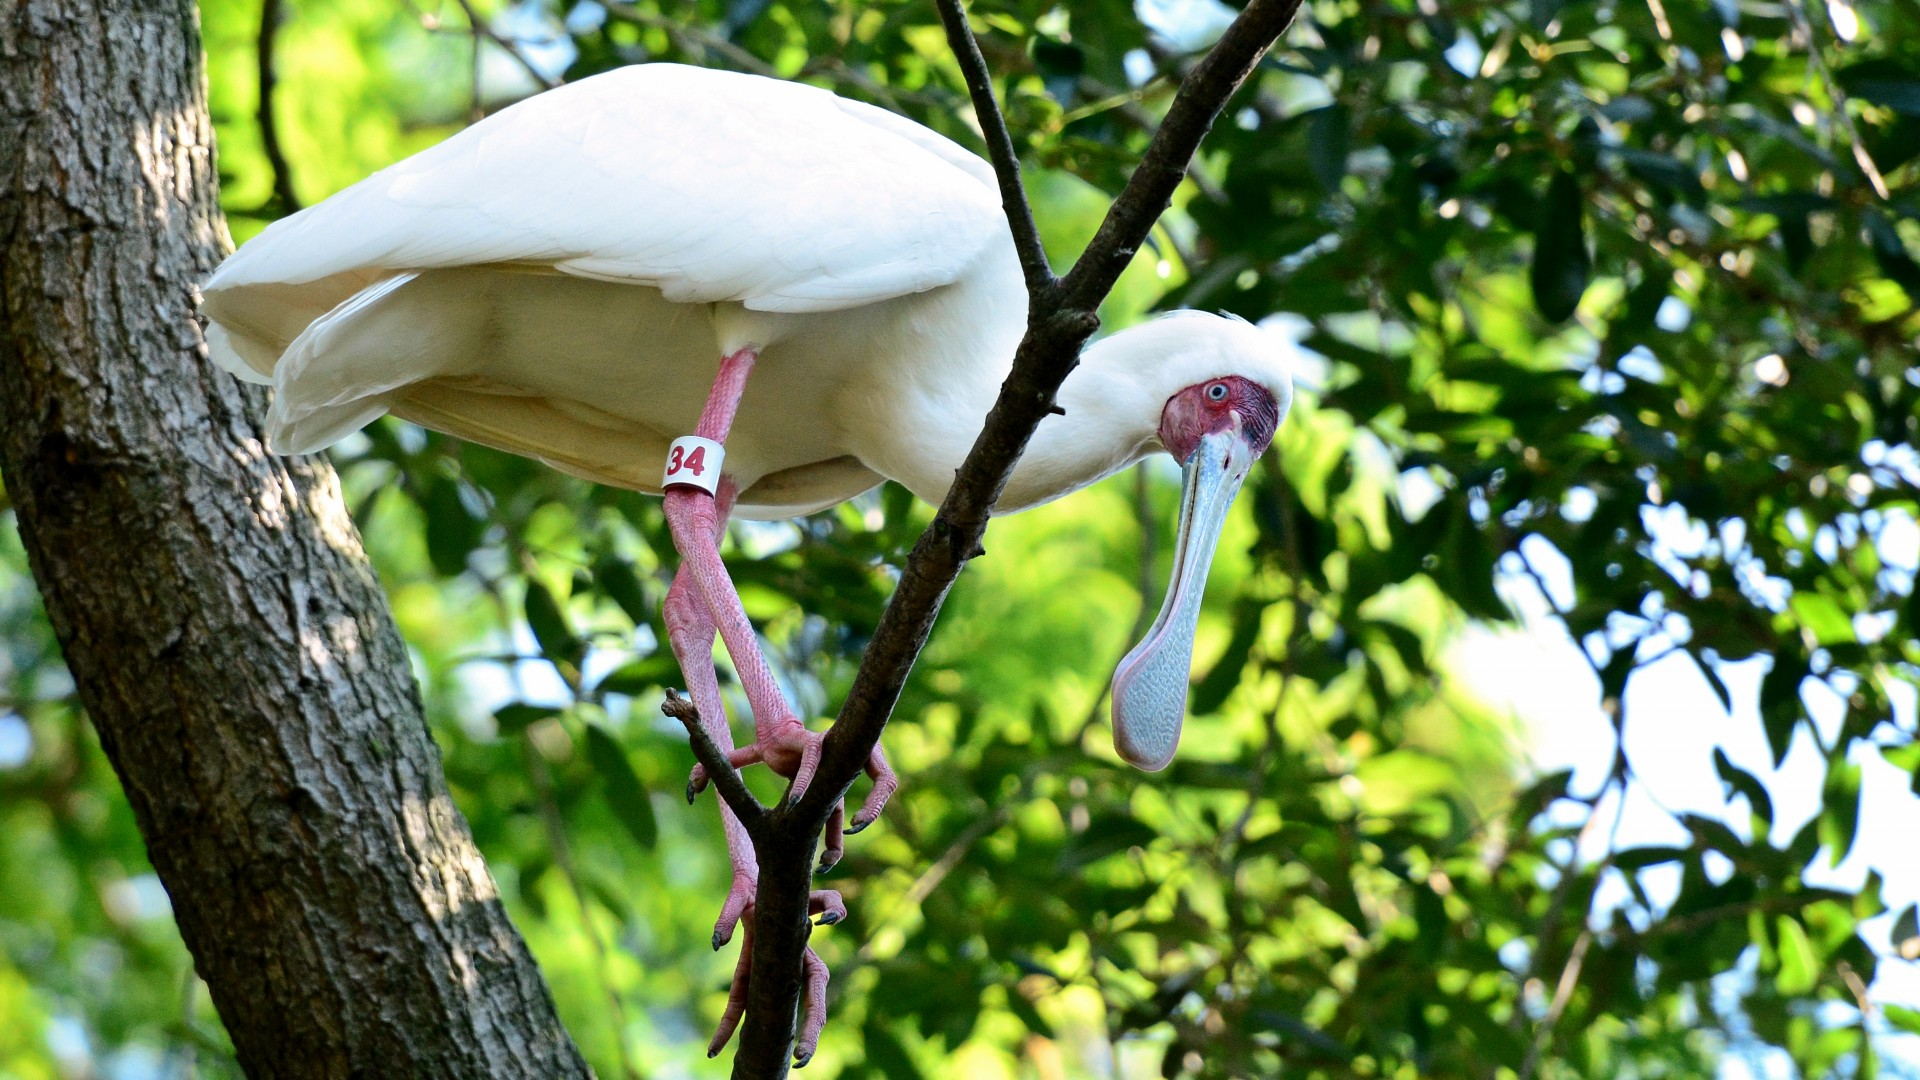 Bird, Dina's City, tourism, zoo, tree, green, white, nature (horizontal)